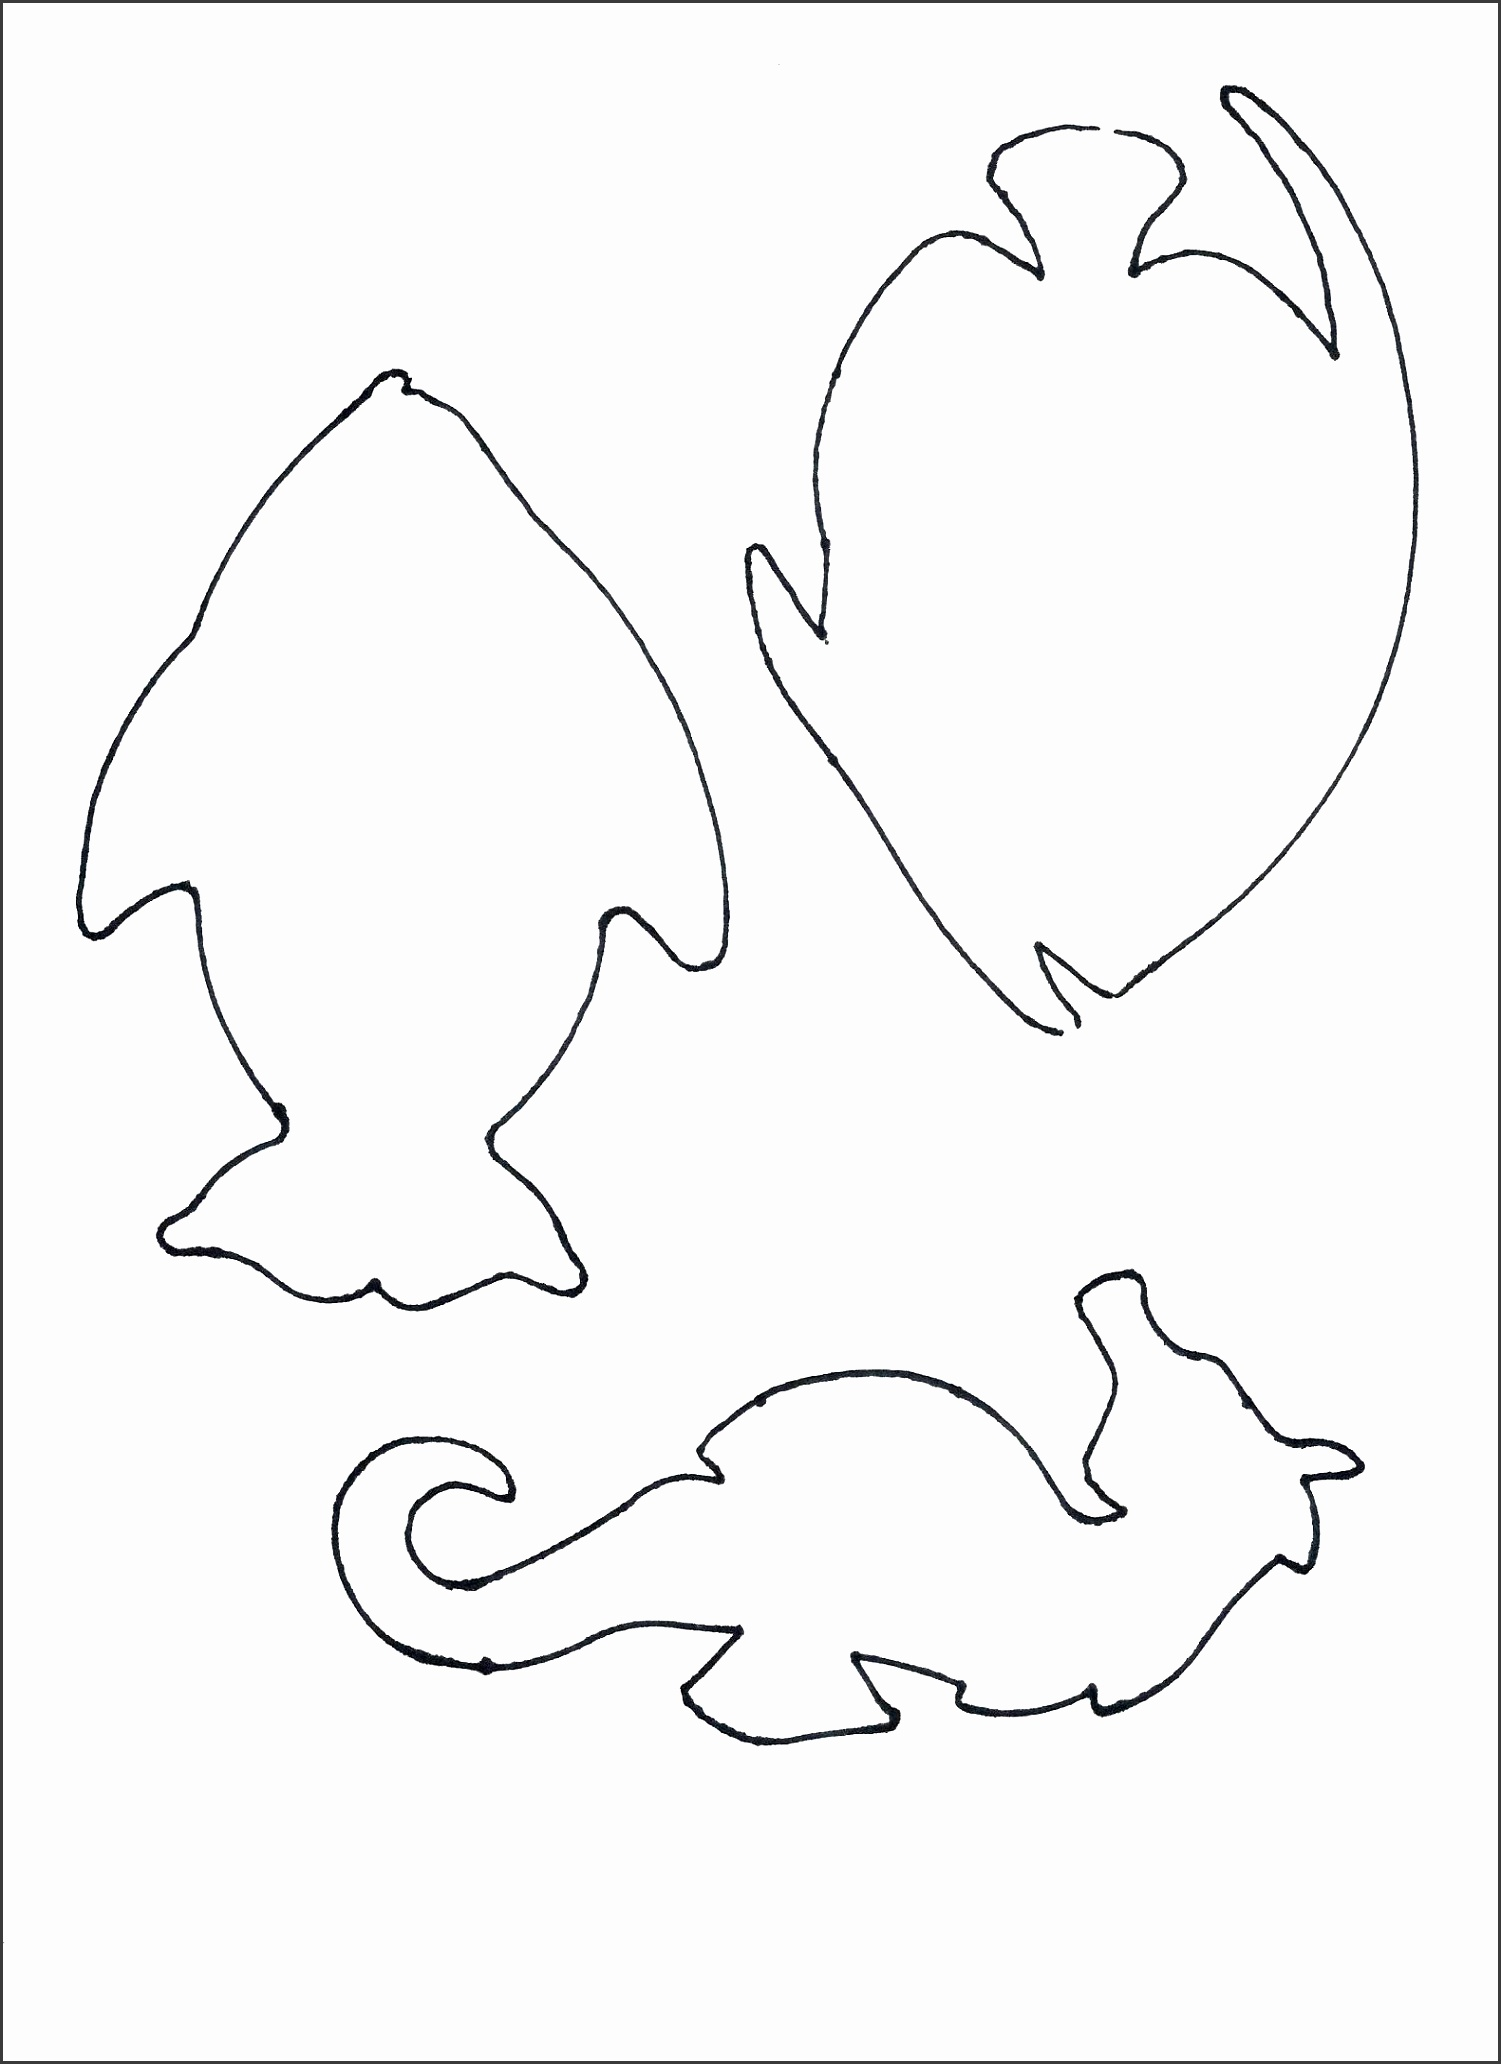 8 Draw A Pig Face 71 Exciting Printable Cow Mask Masks To